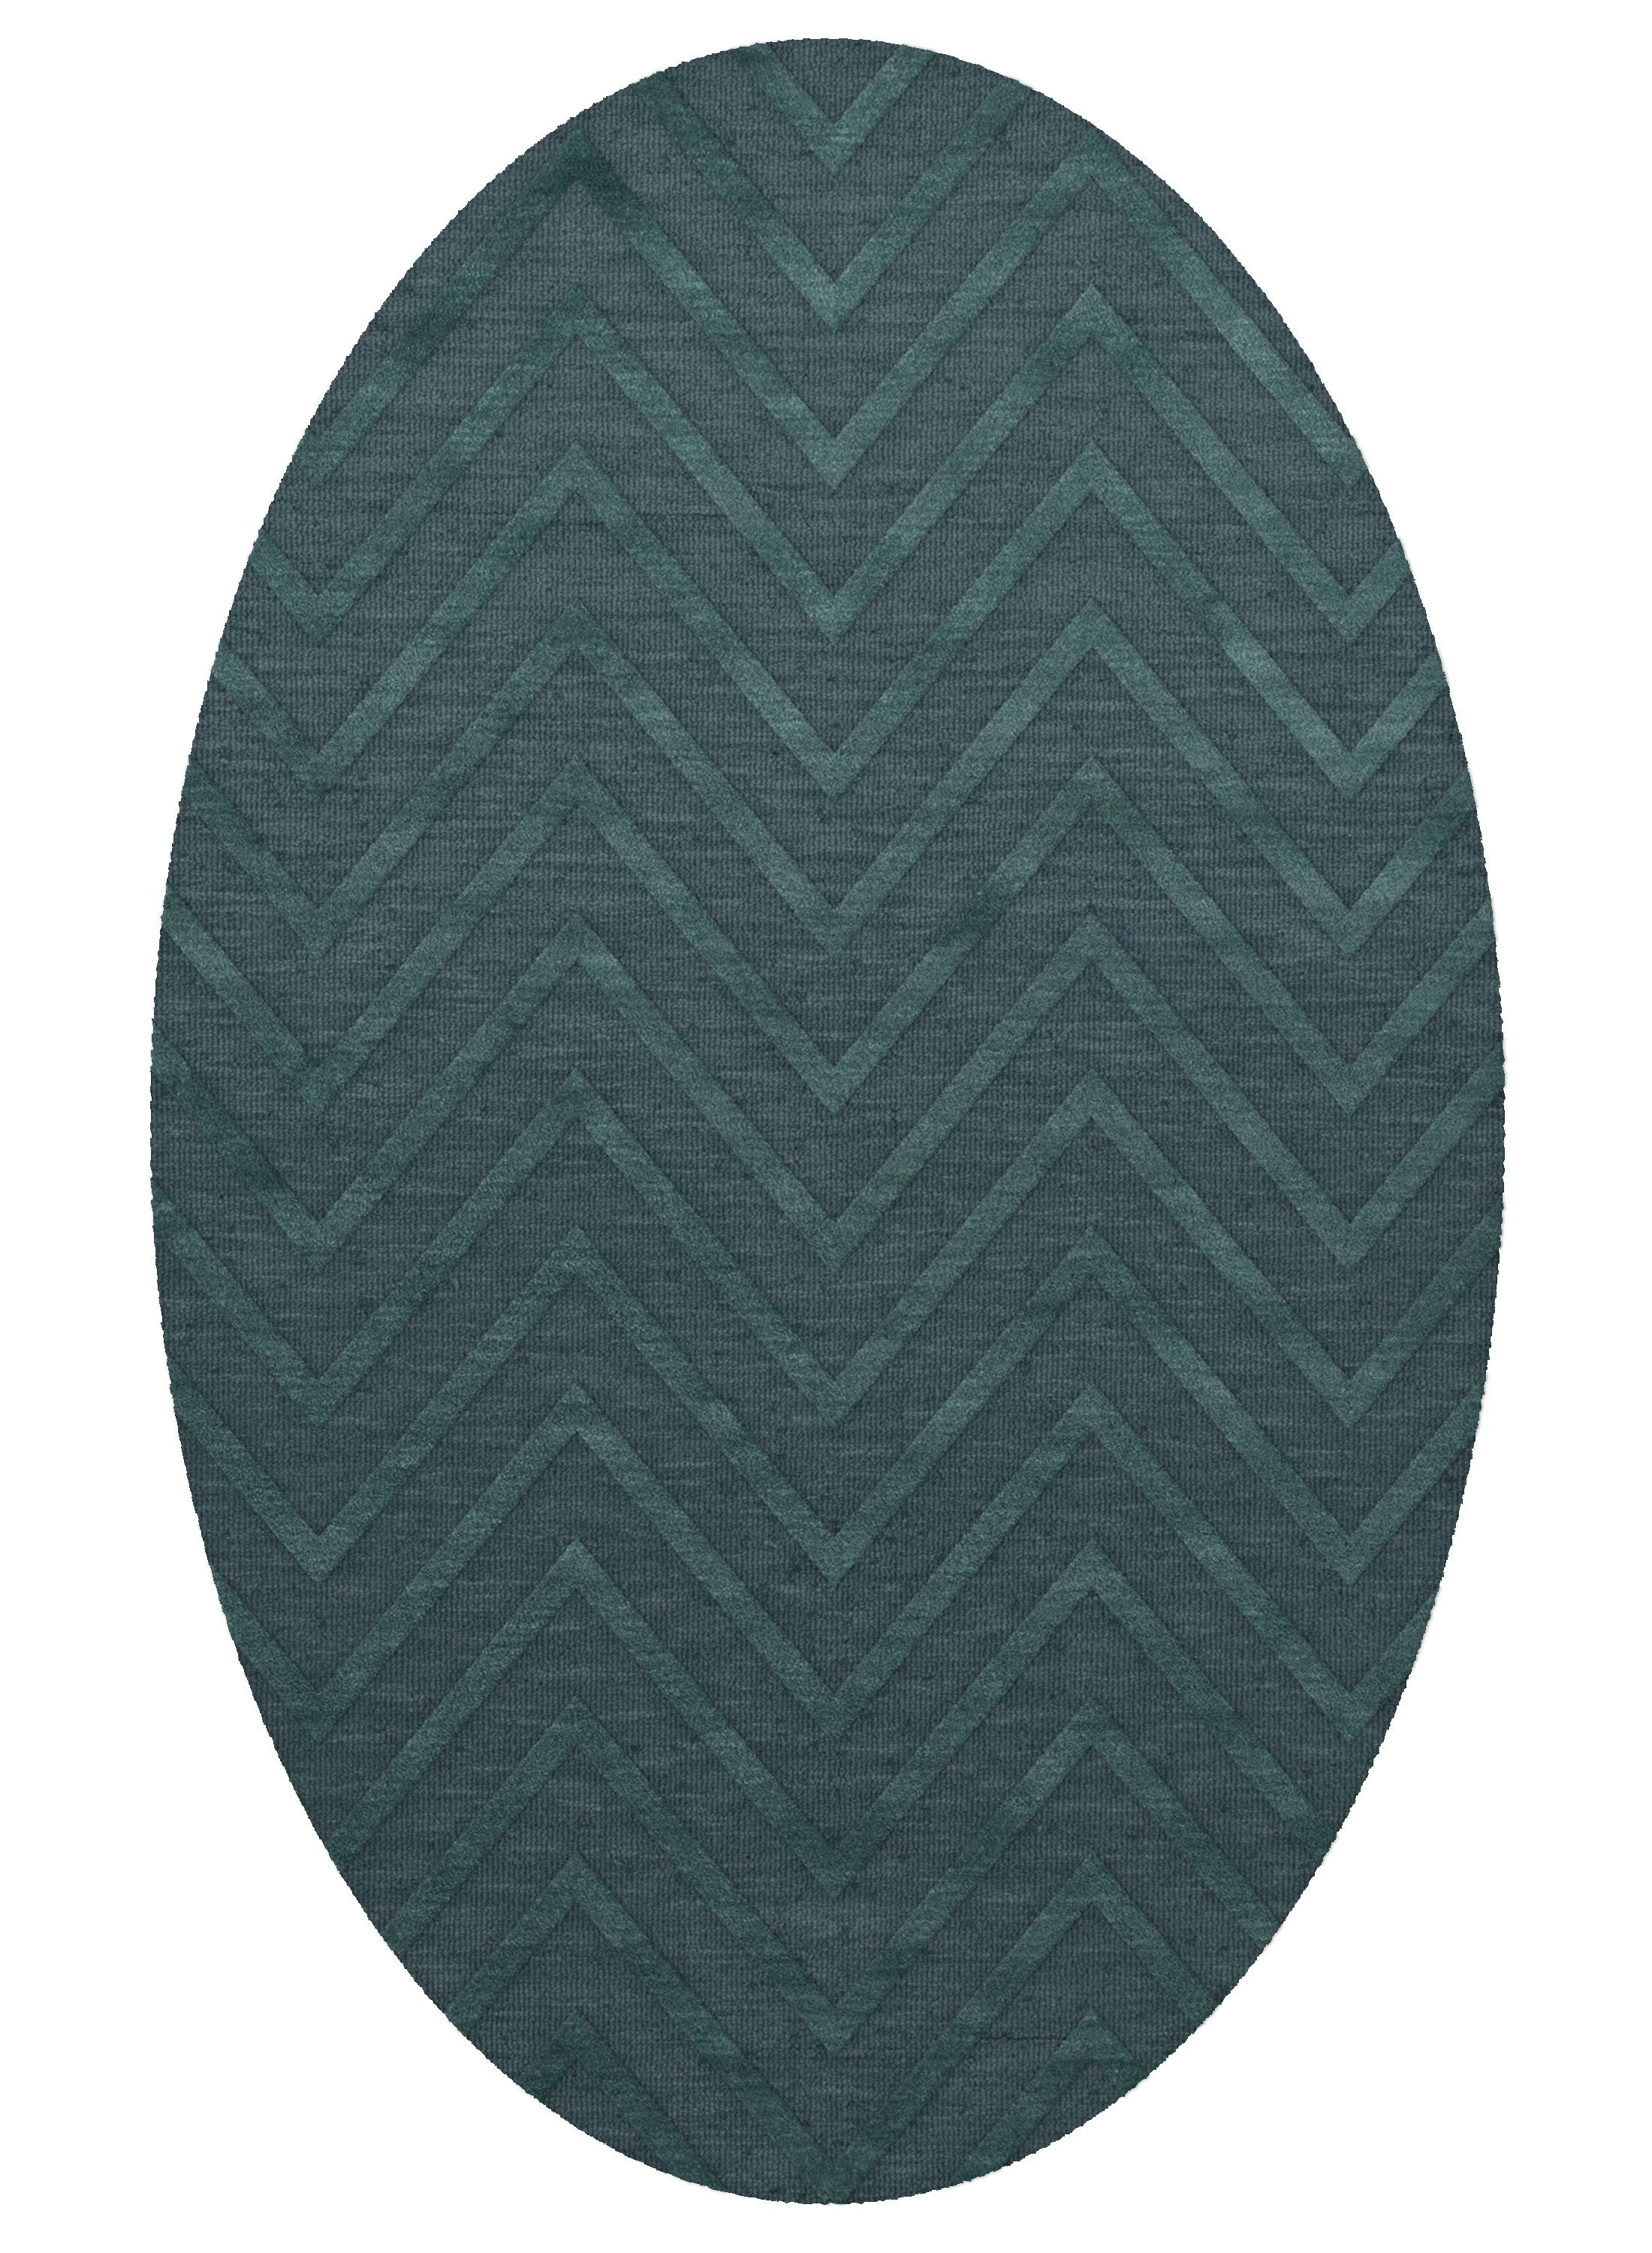 Dover Tufted Wool Teal Area Rug Rug Size: Oval 6' x 9'